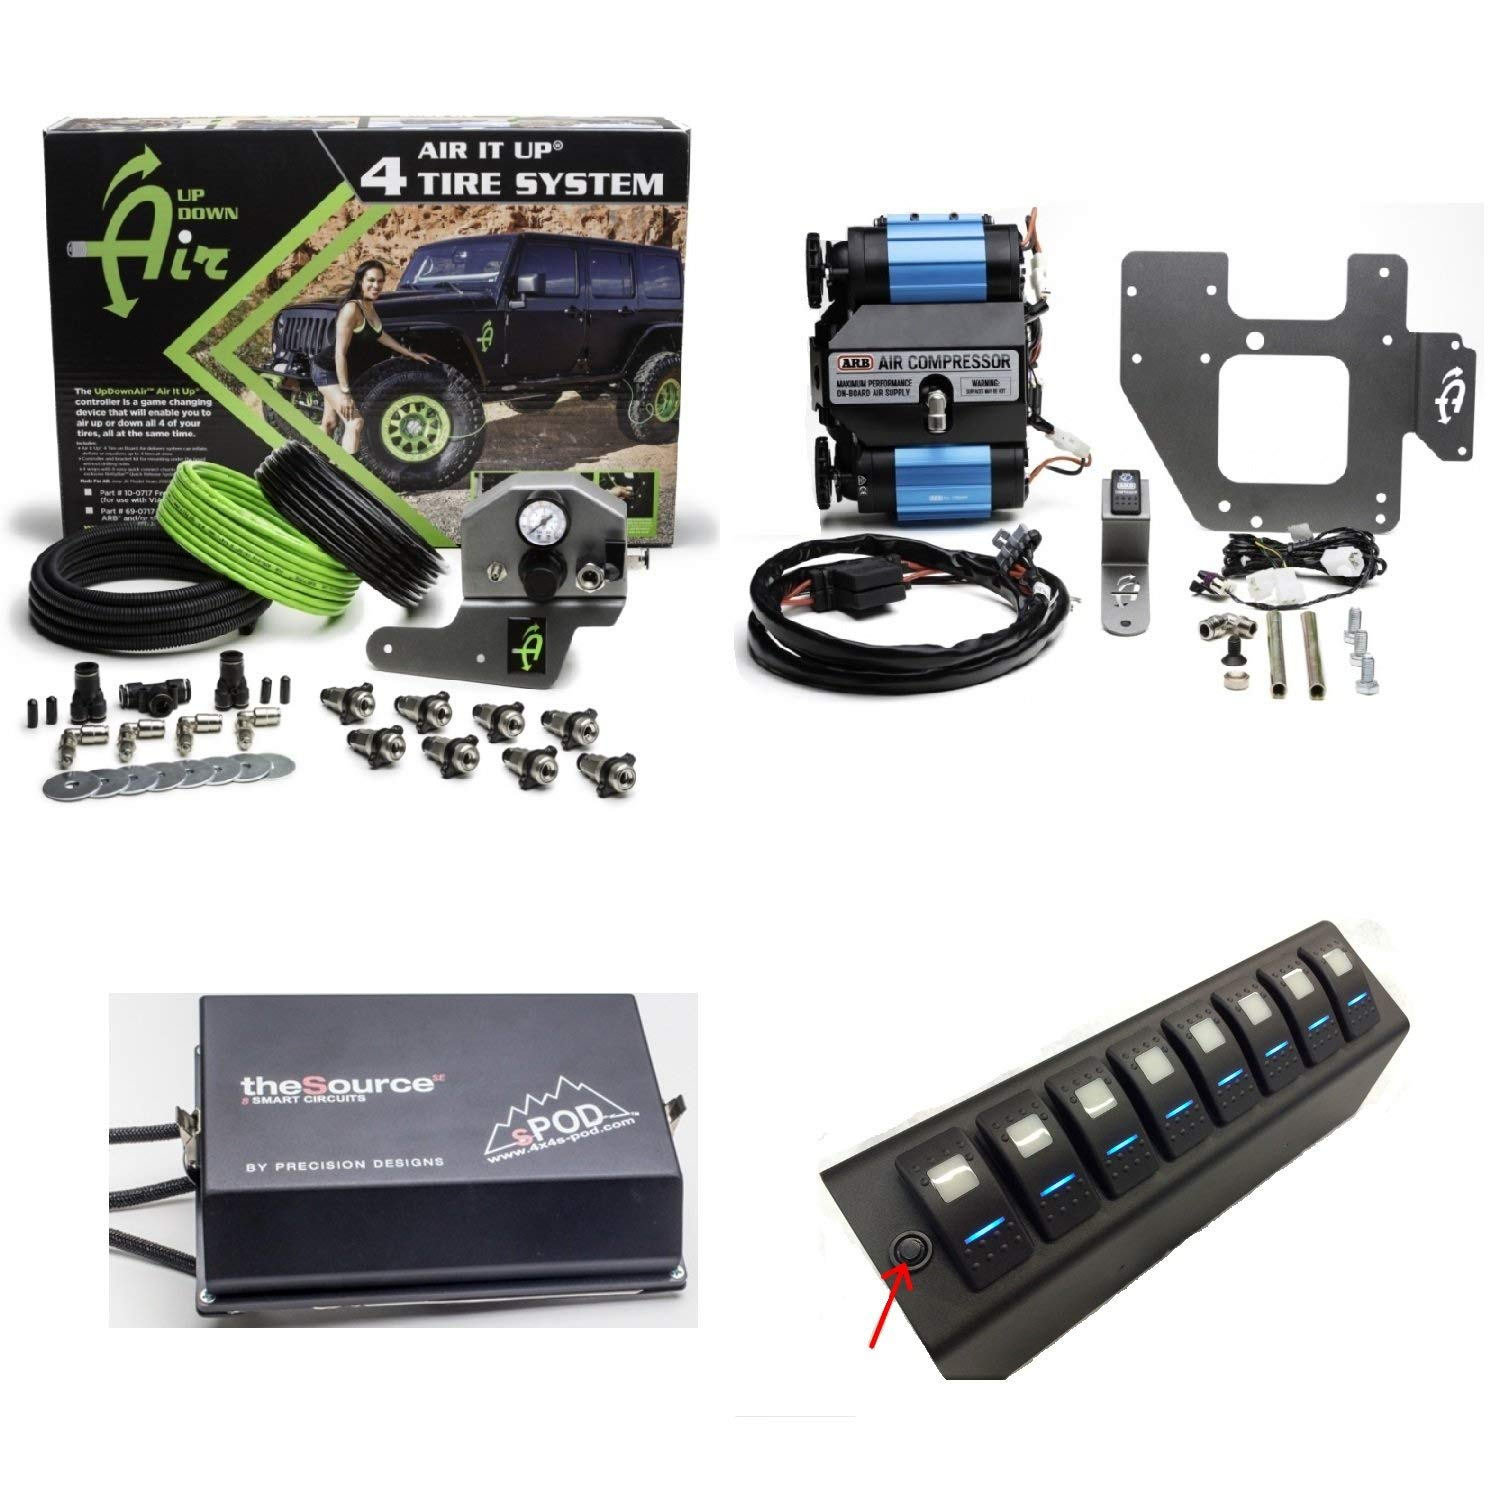 Up Down Air 22-7810/69-0717 Air It Up 4 Tire On Board Air Delivery w/ARB CKMTA12 Compressor & sPOD 8-600-07-LED-G All Green 8 Circuit SE System for 07-08 Wrangler JK